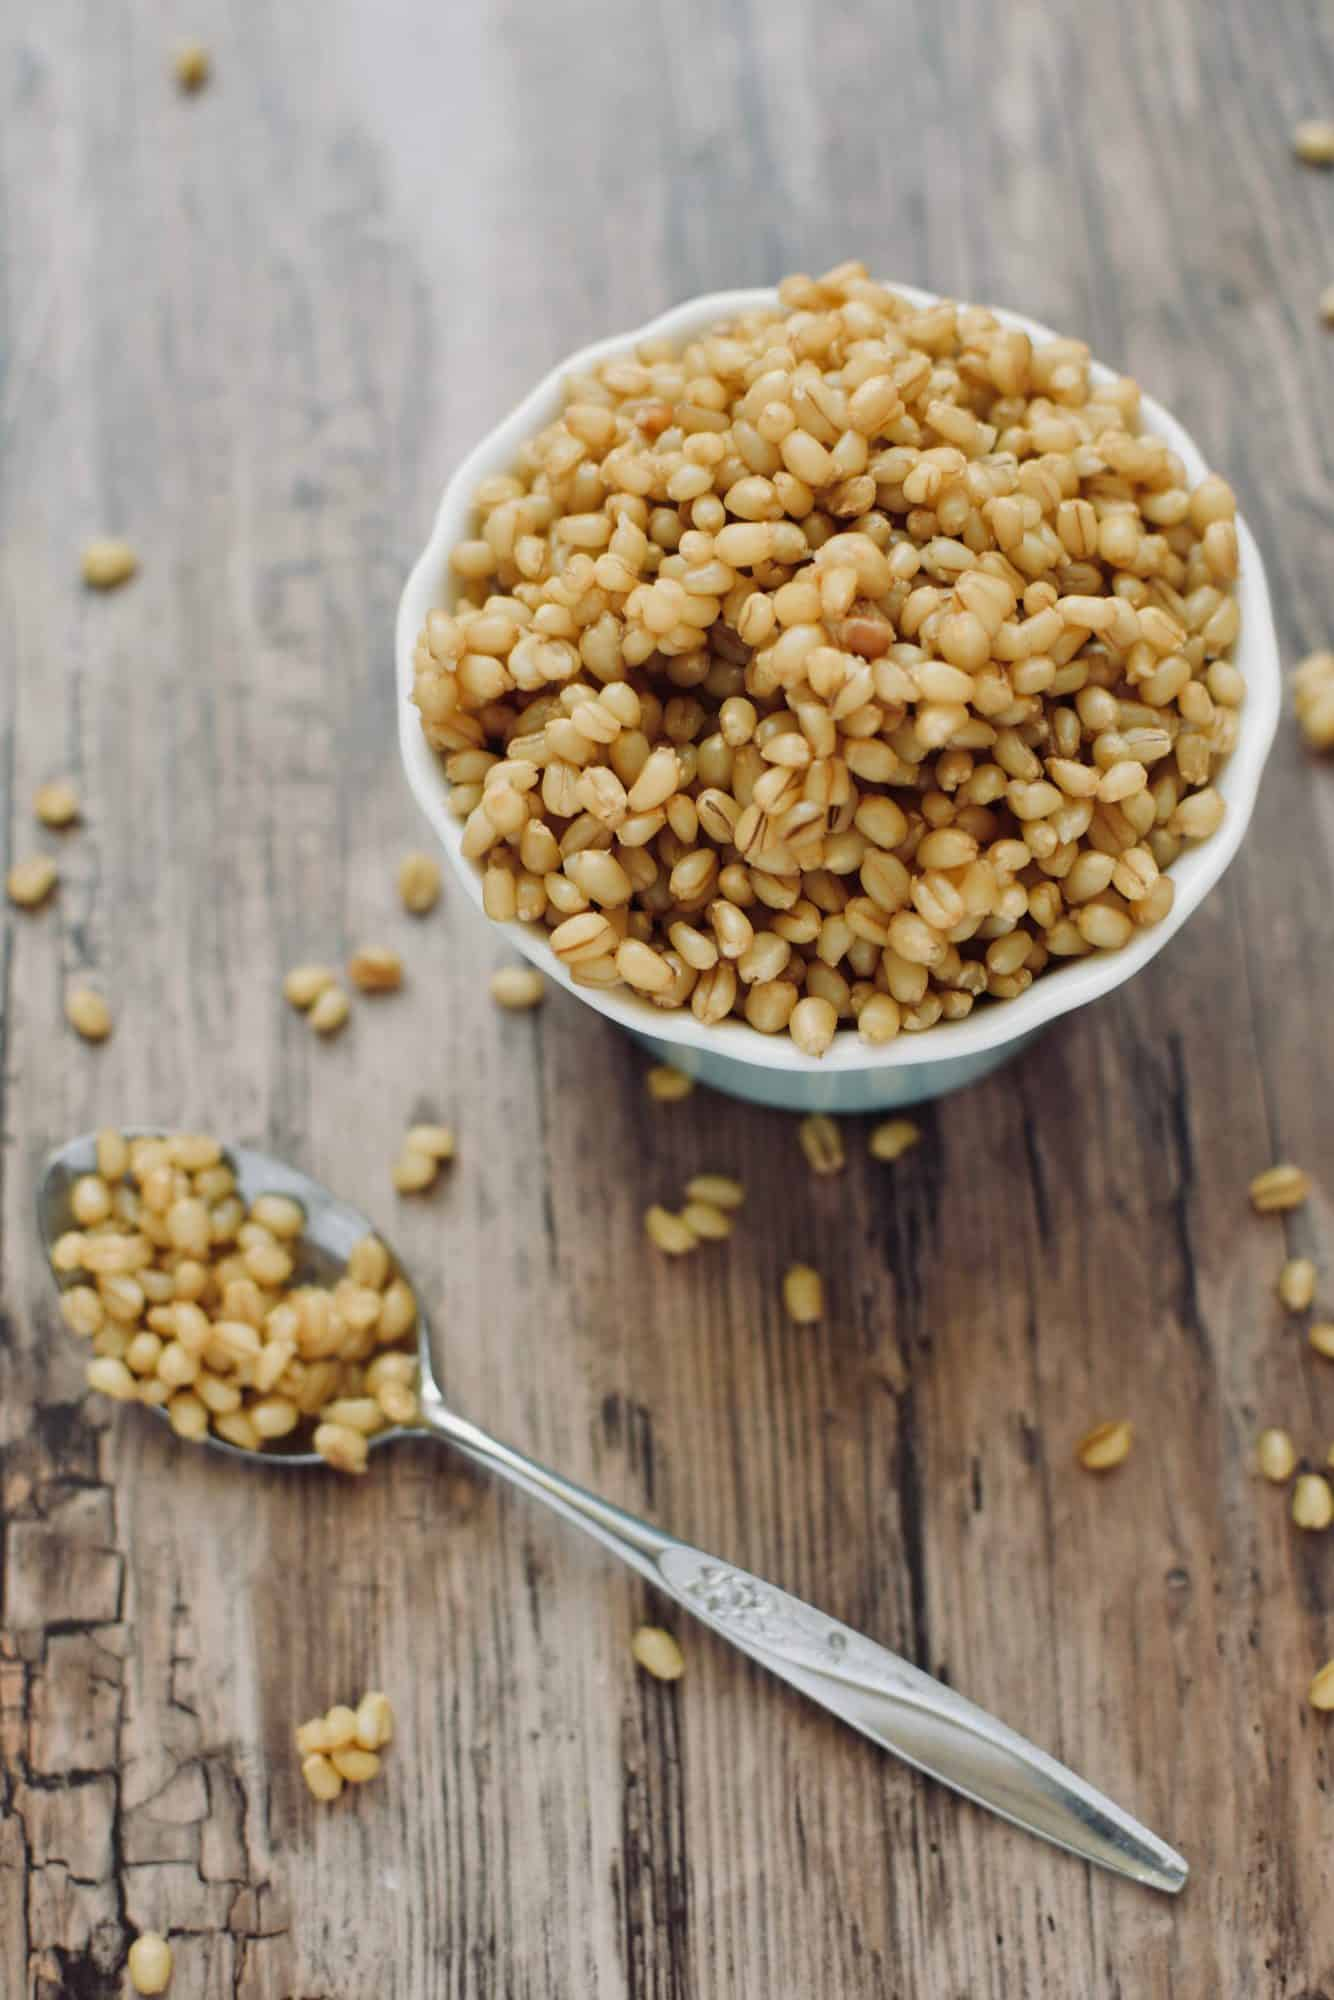 a small bowl of wheat berries on a wooden table. A spoon full of grains is next to the bowl.